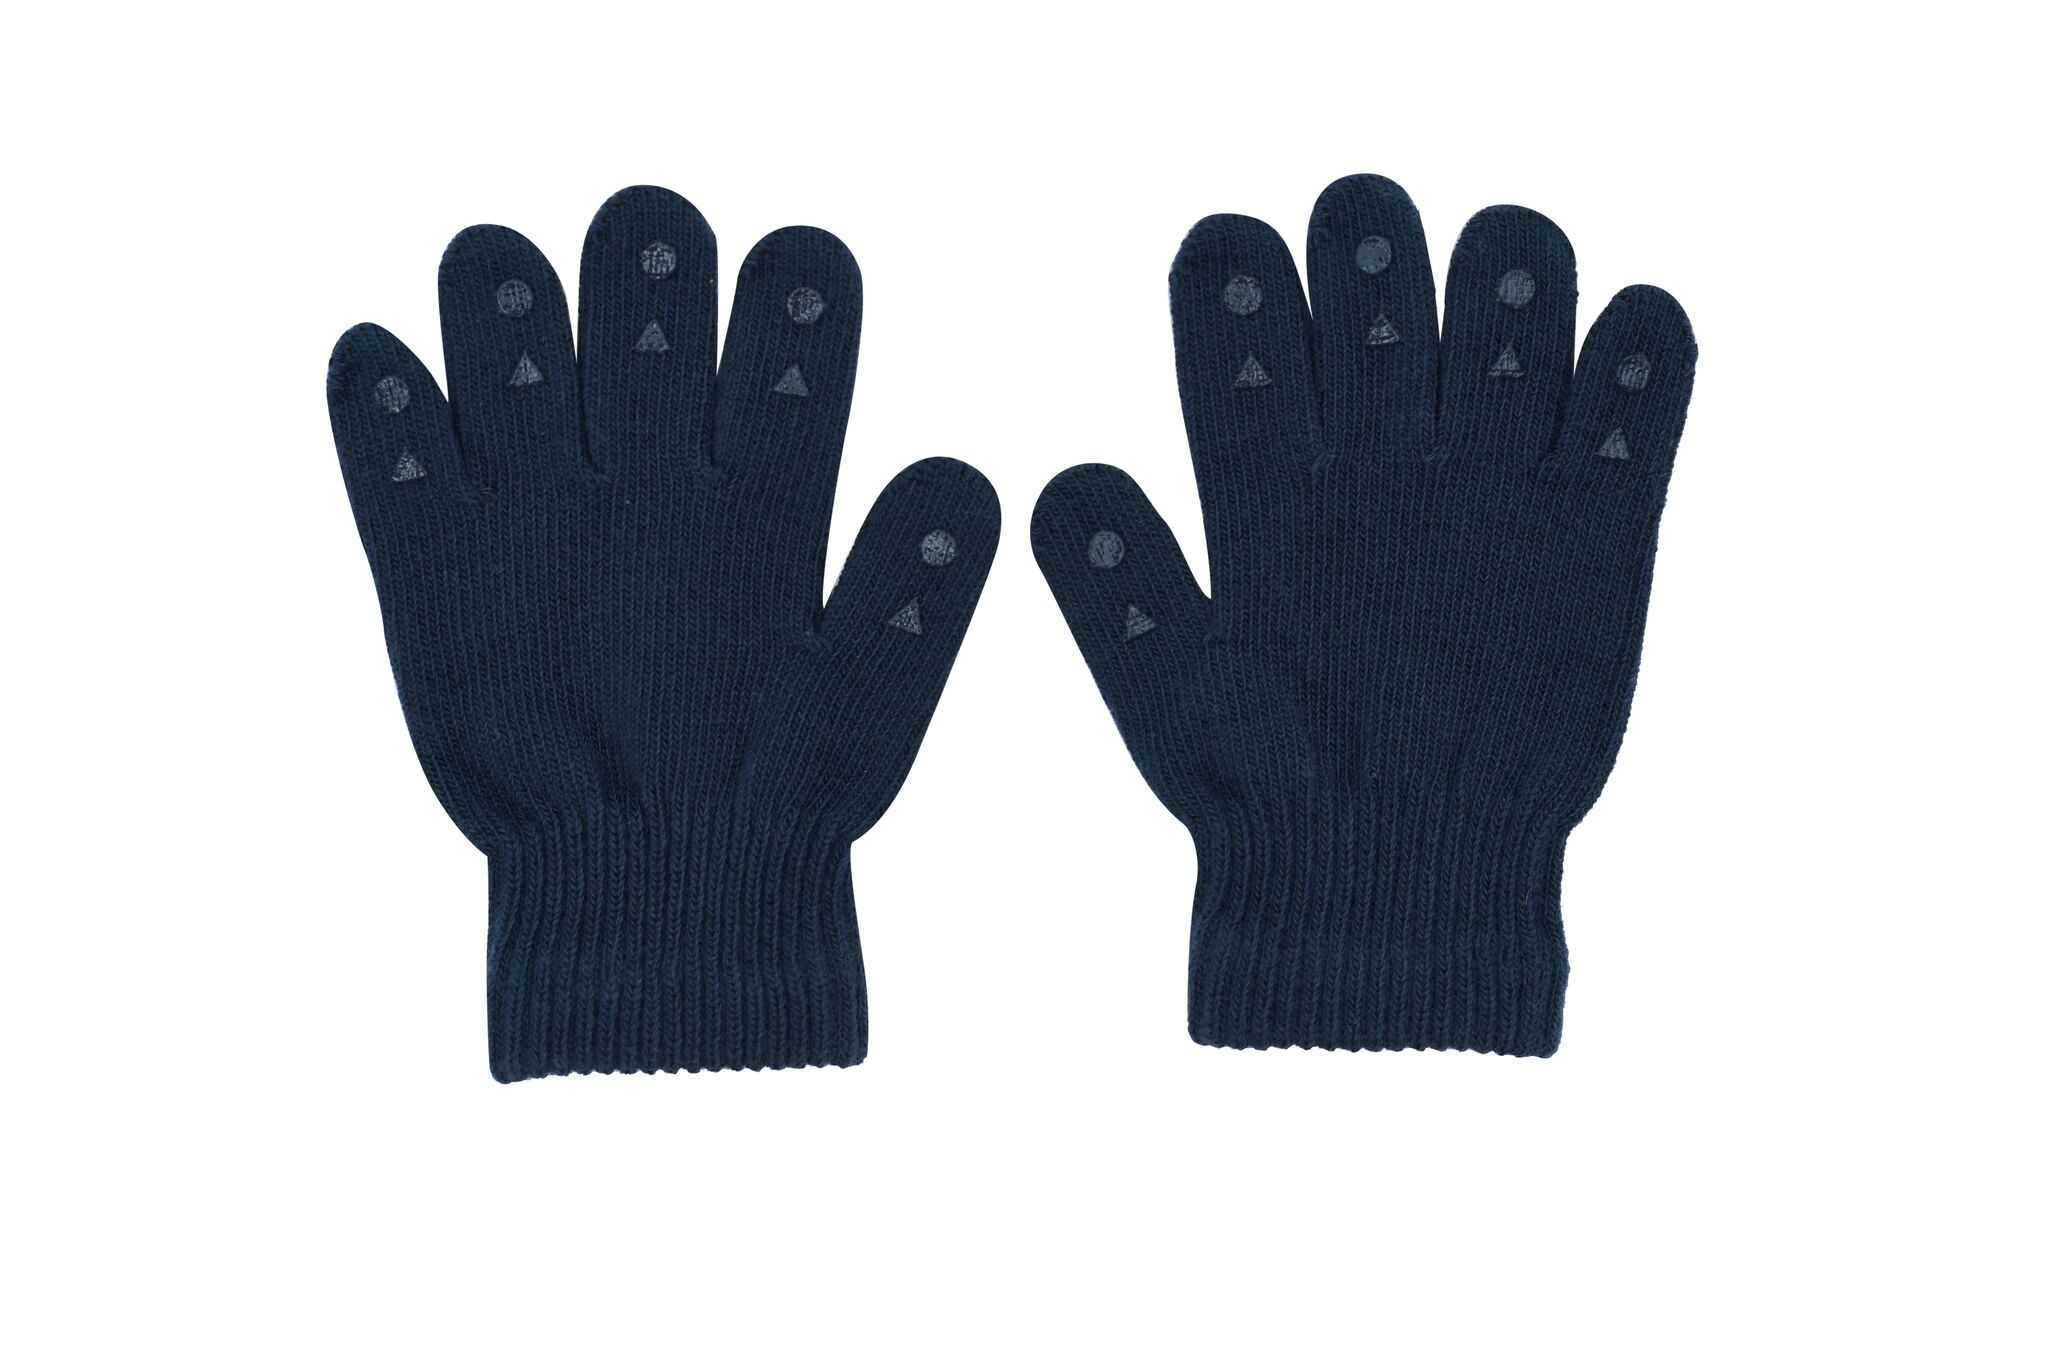 GoBabyGo Grip Gloves Fingervantar 1-2 år - Petroleum Blue